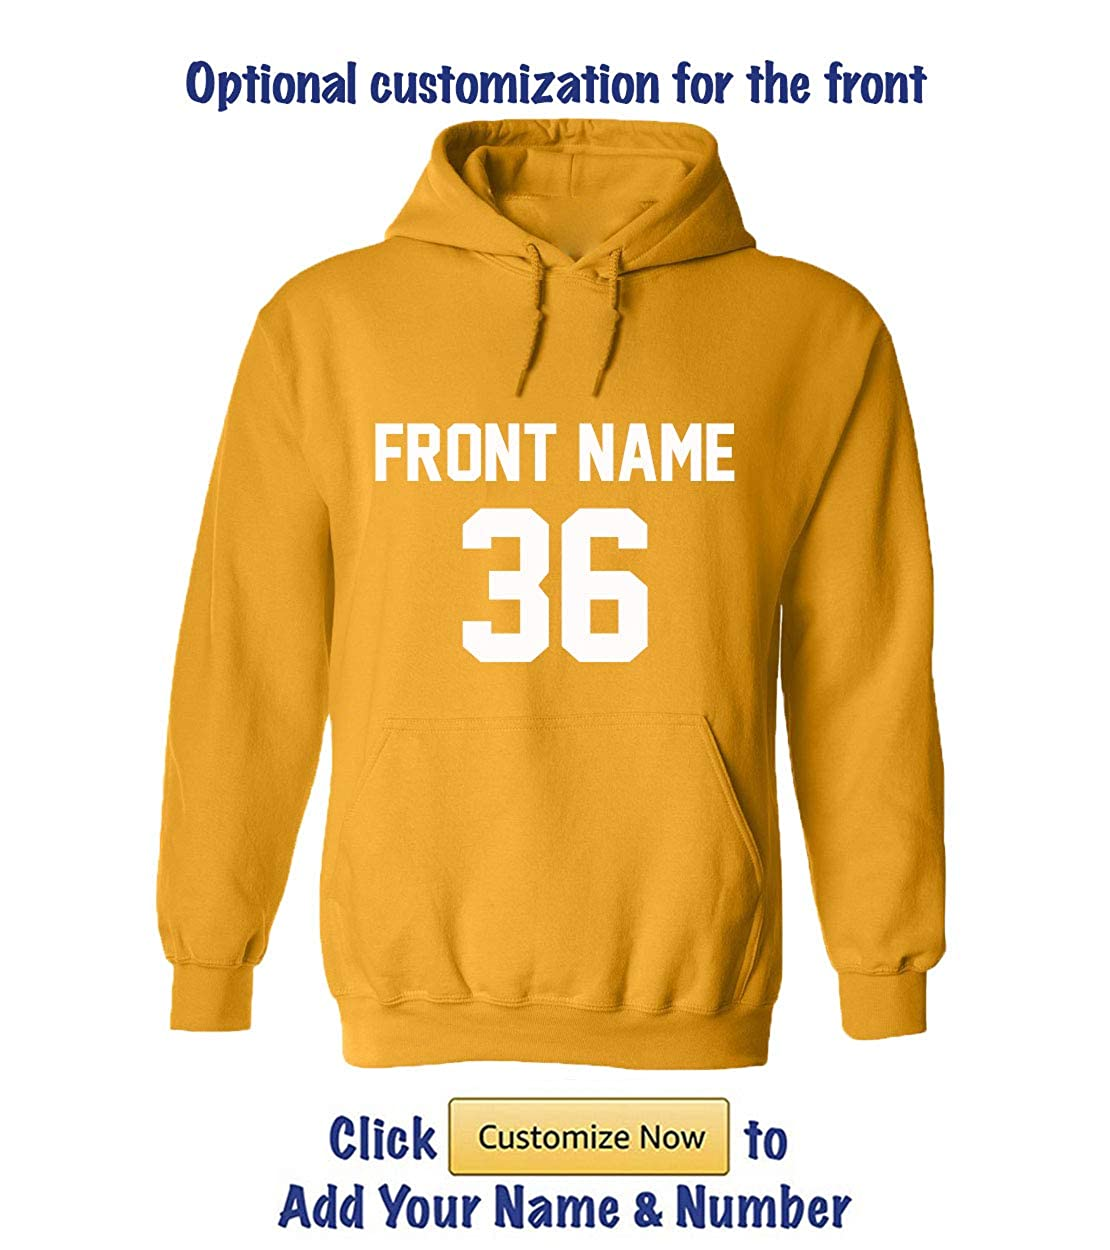 Amazon.com: Custom Hoodies - Add Your Name & Number - 2 Side Personalized Sweaters: Clothing